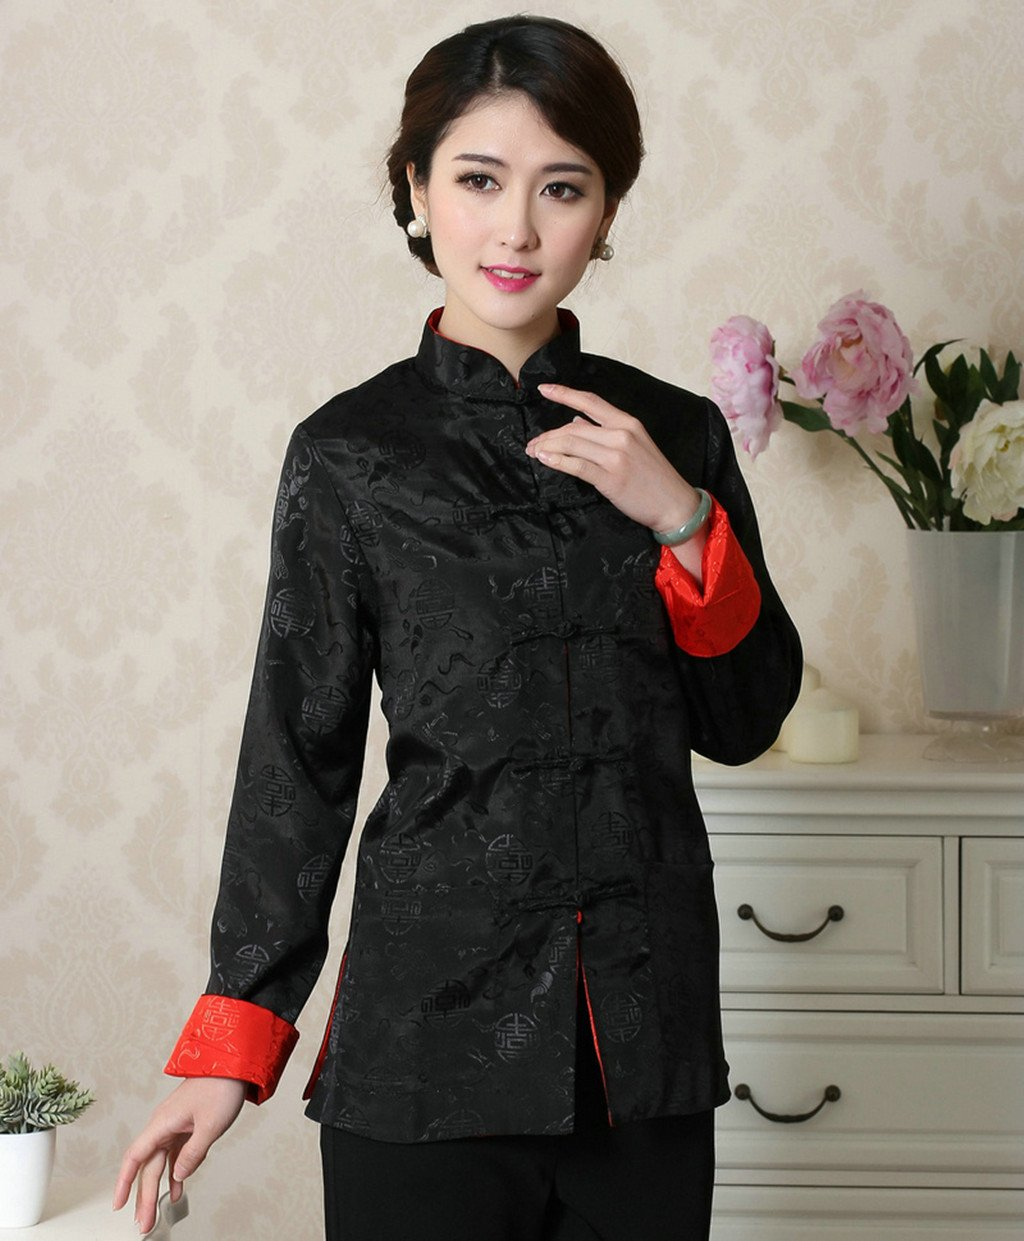 Womens Tang Suits Womens Leisurewear Double-sided Wear Spring and Autumn Womens Clothes Long sleeved Coat Chinese Jackets by Womens Tang Suit (Image #3)